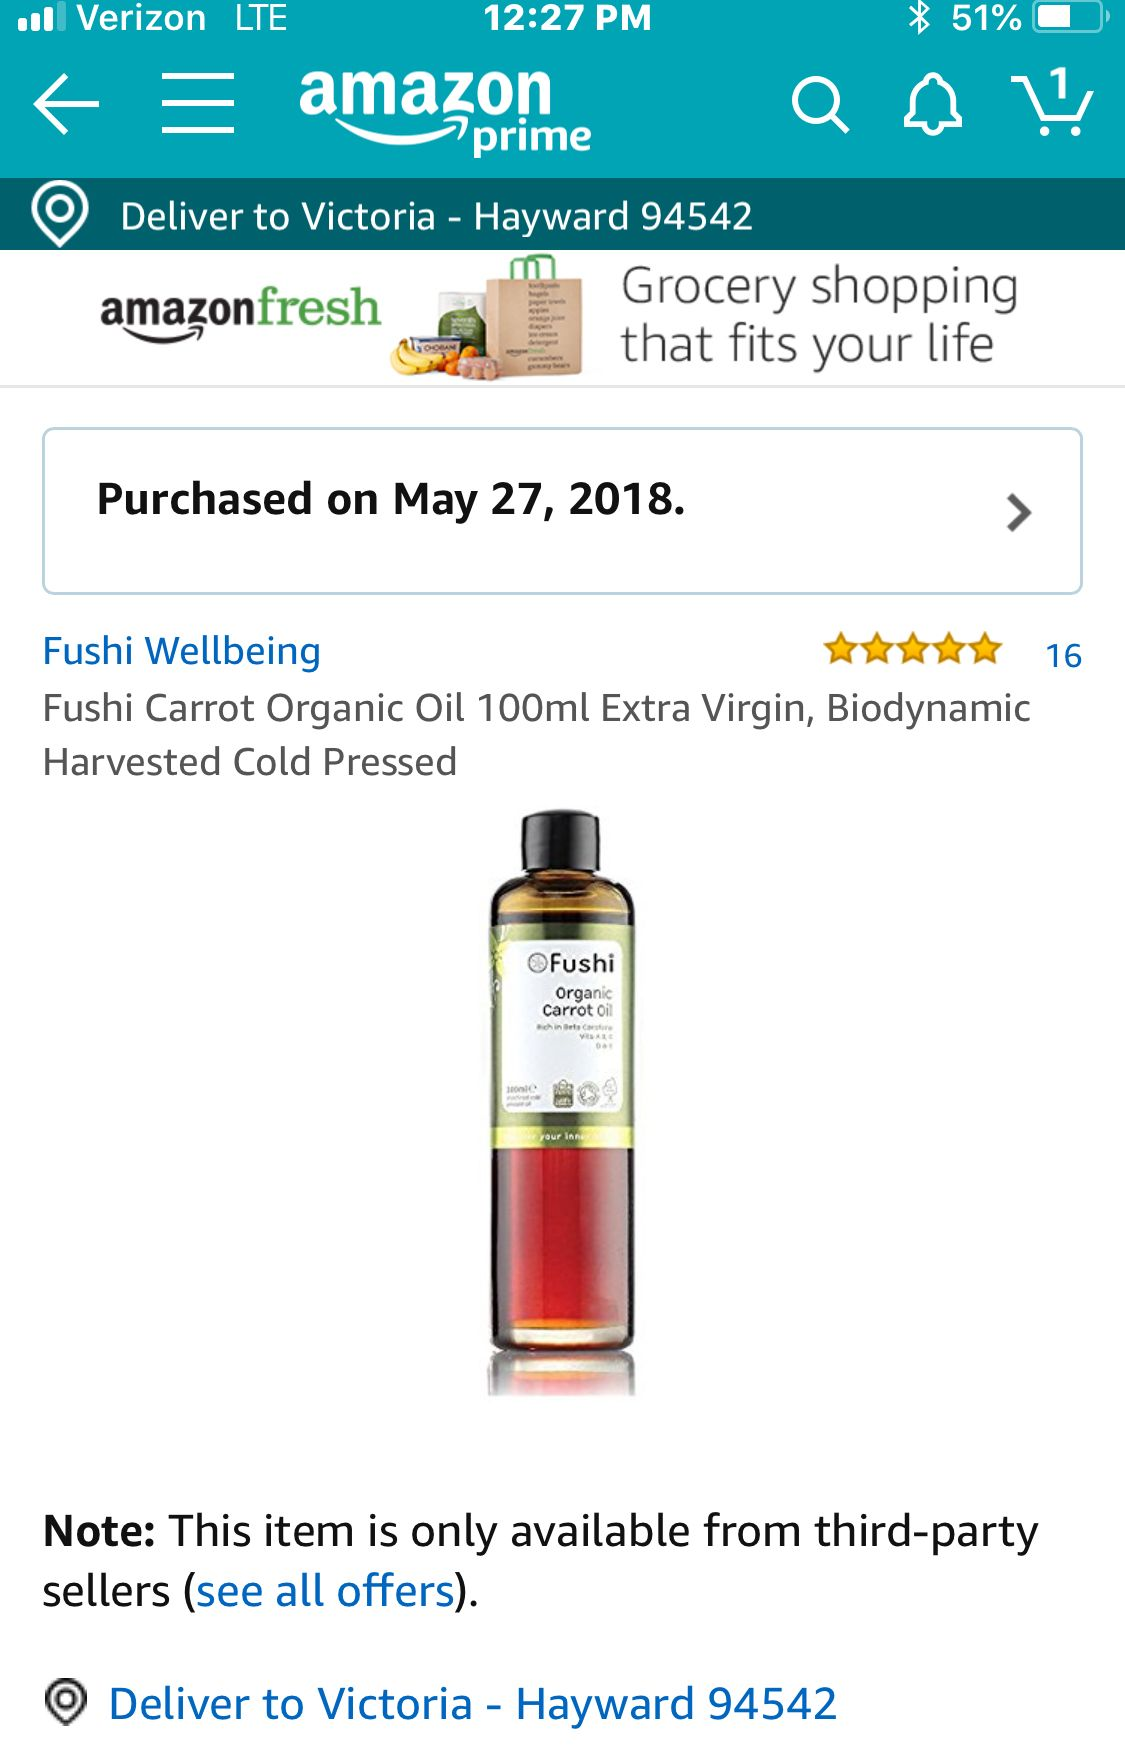 carrot seed oil, which is an extremely beneficial oil, but